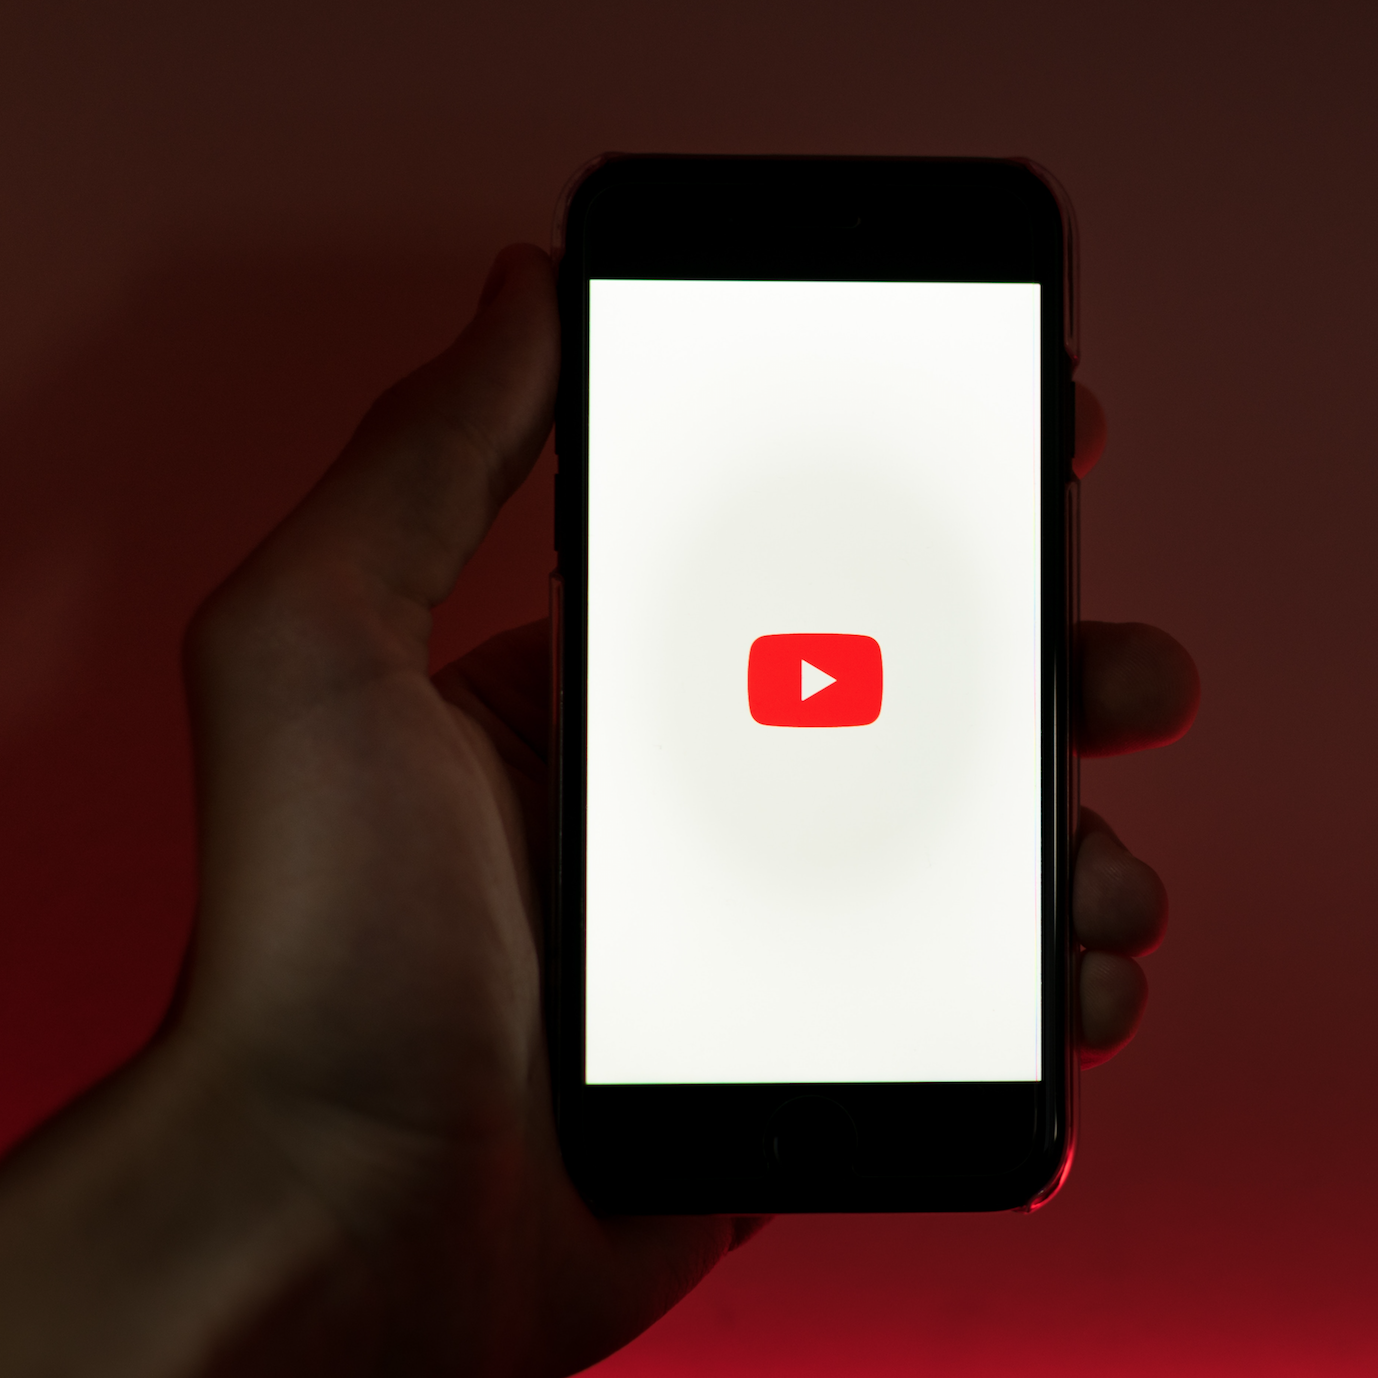 The Connection between Product Video and Conversion Rates